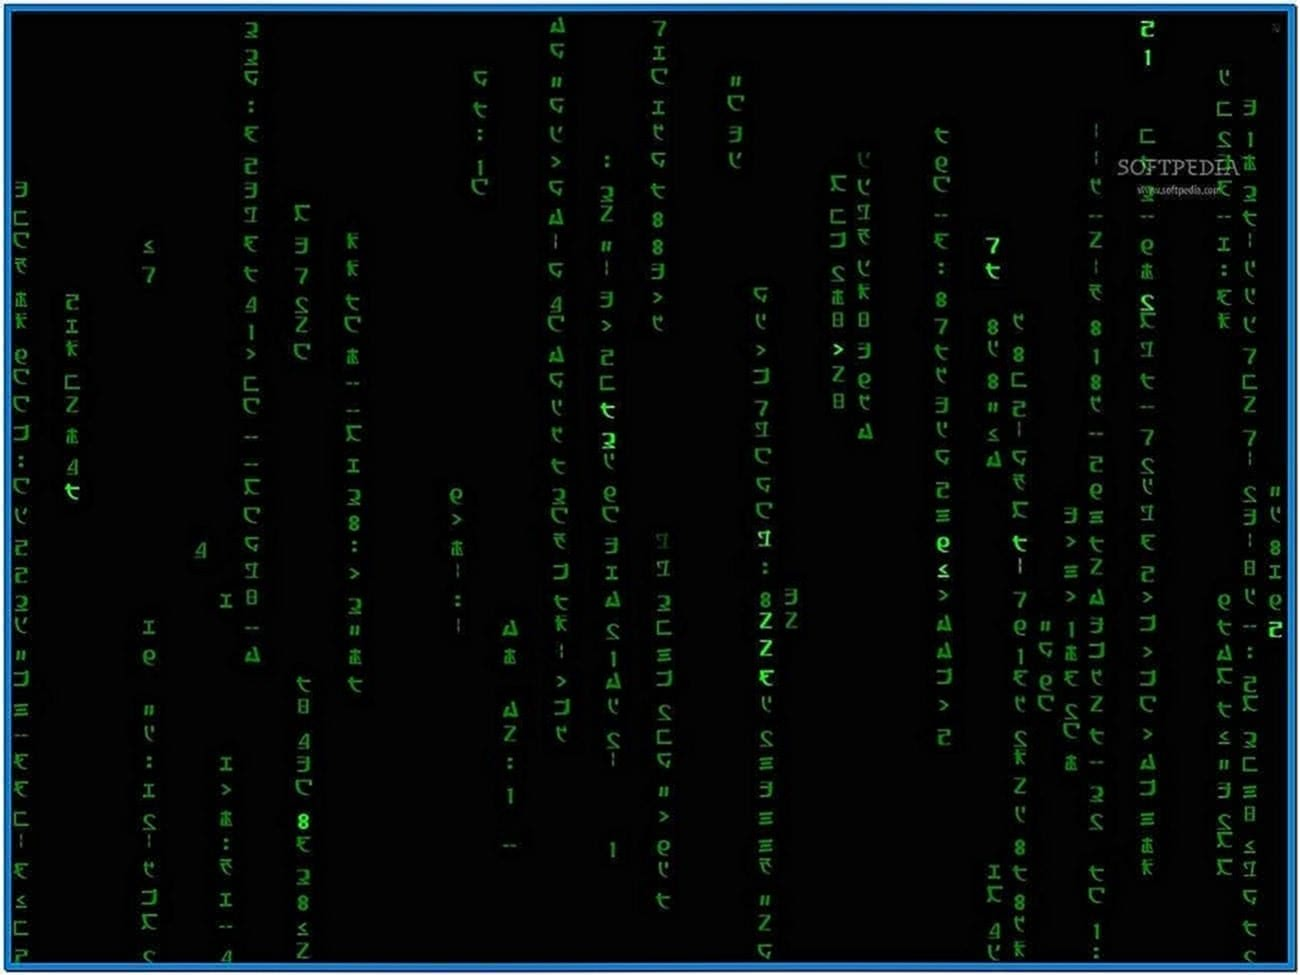 Animated matrix screensaver windows 7 - Download free